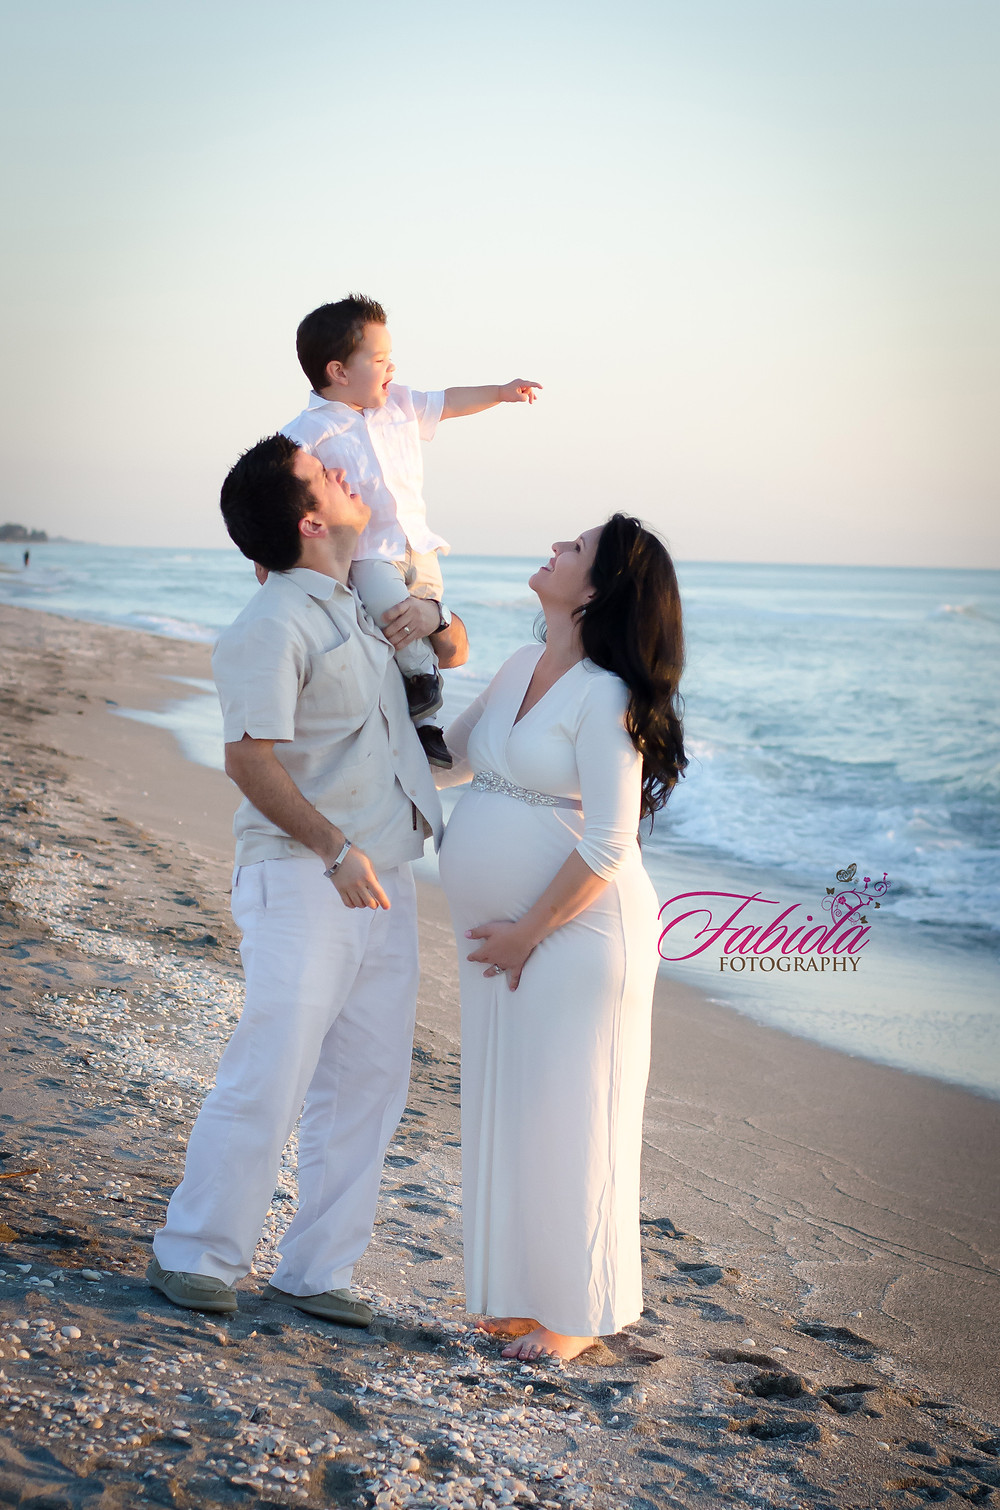 Family/Maternity Session on a beach in Sarasota